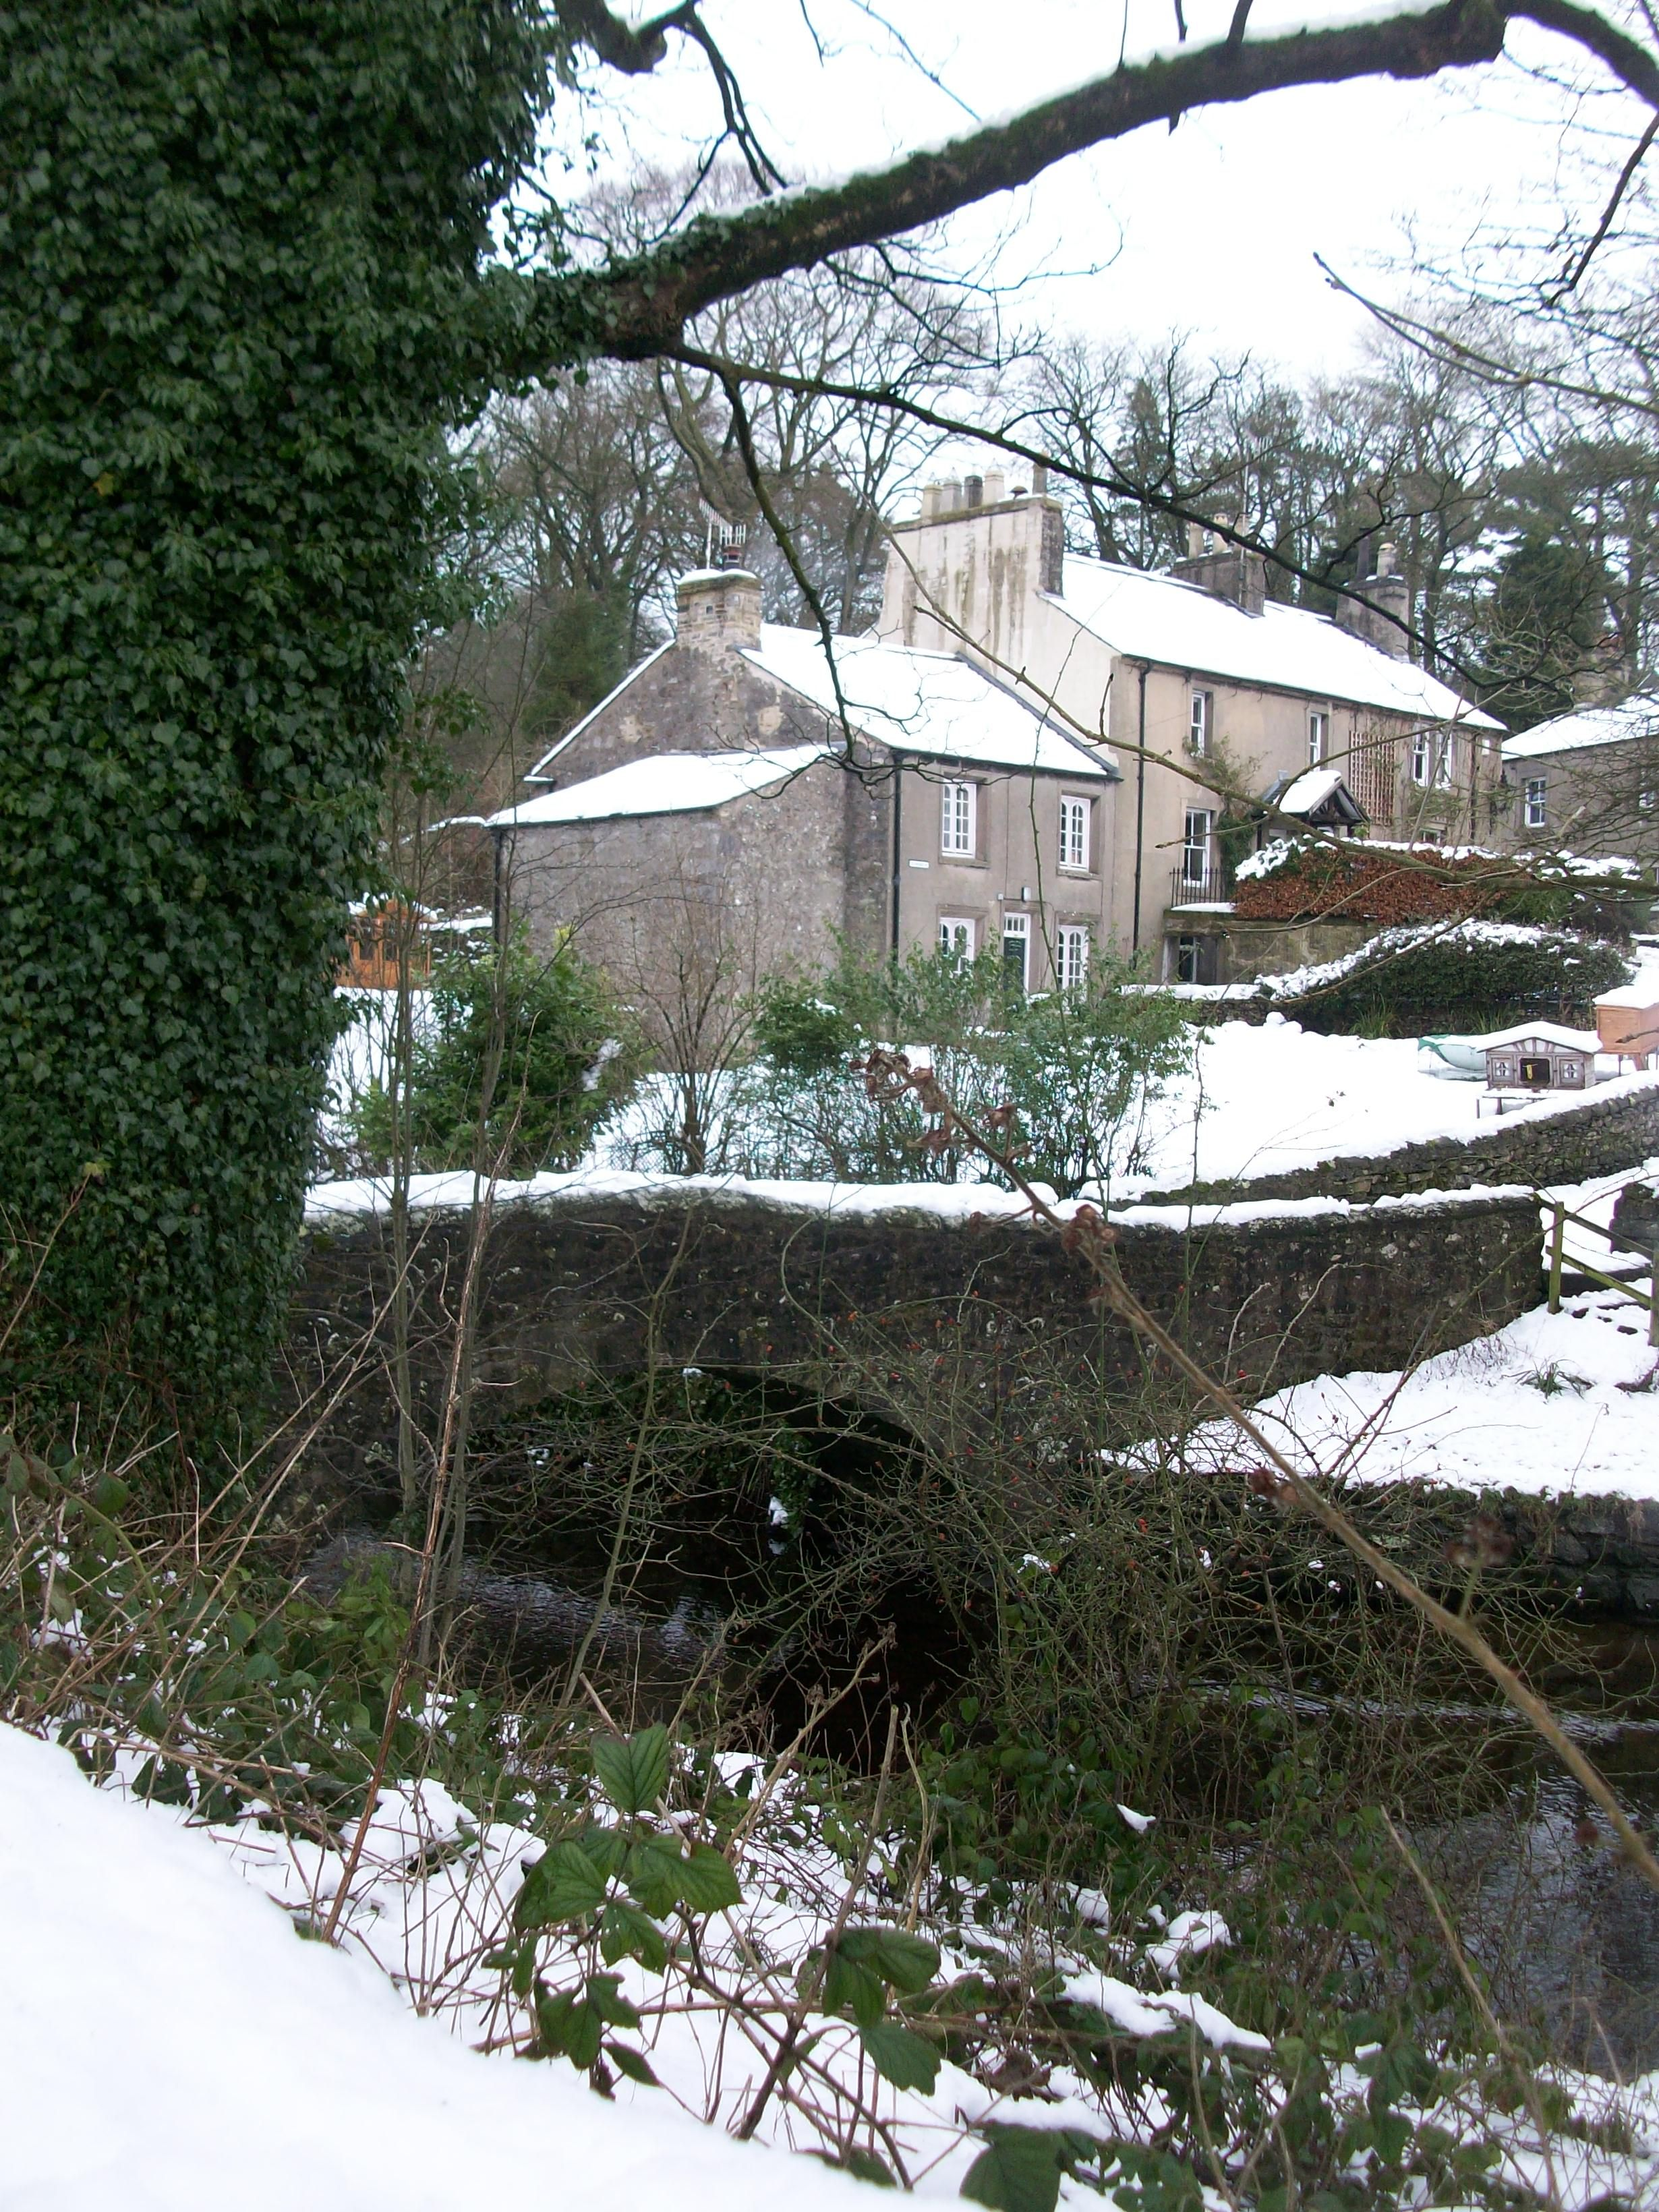 Clapham, Yorkshire In The Snow #Countryside#Hills #Yorkhire#England#Village#Cottage#Snow